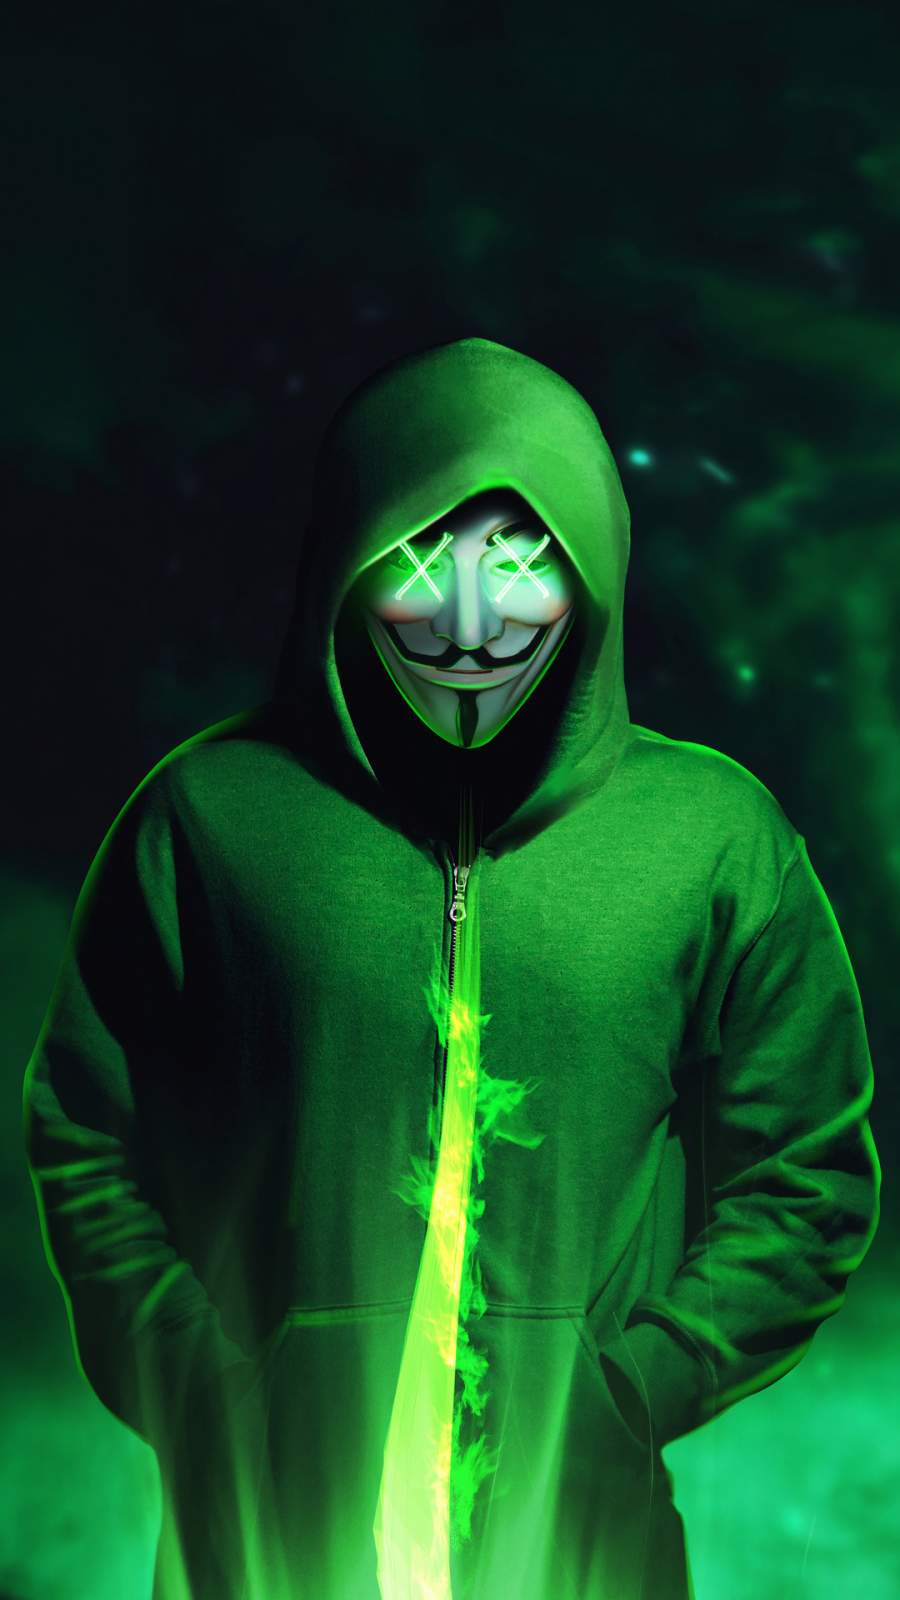 Green Hoodie Anonymus Mask iPhone Wallpaper